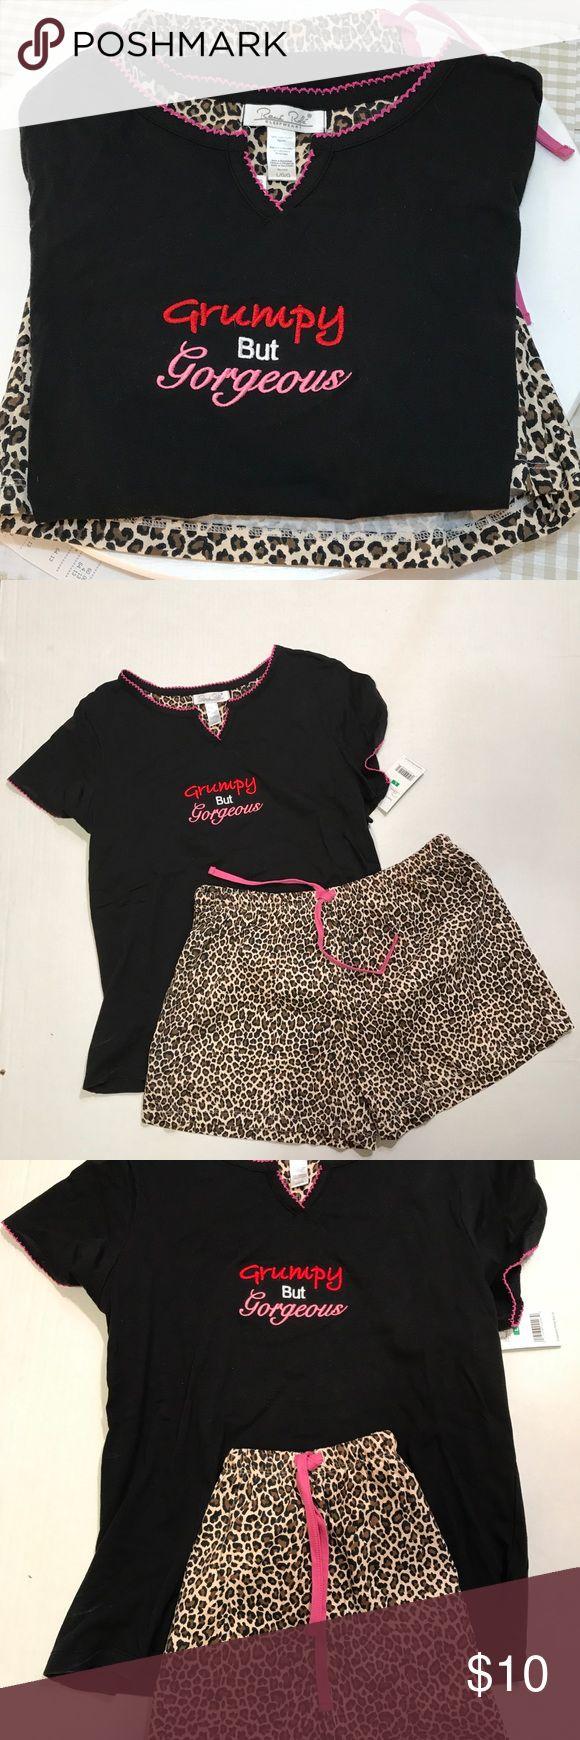 Renee Rofe pajama short set Leopard print draw string elastic waist shorts with matching black top with Grumpy But Gorgeous embroidered on front v neck shirt sleeve top Renee Rofe Intimates & Sleepwear Pajamas